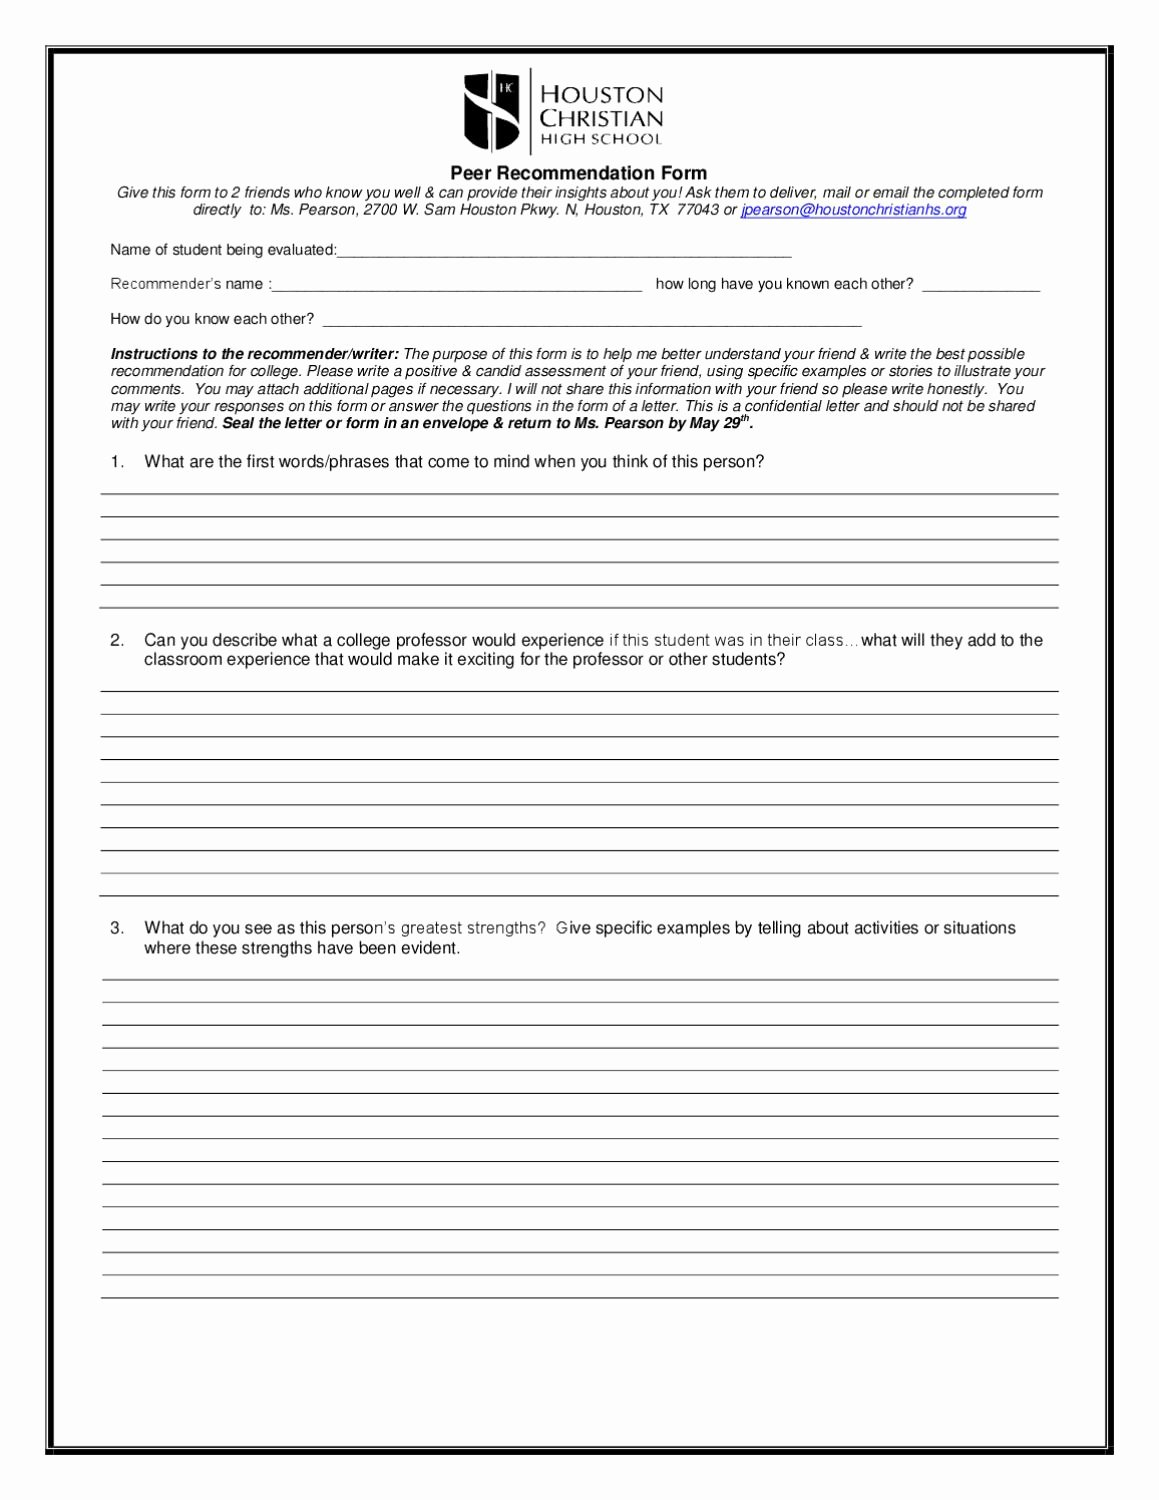 Peer Letter Of Recommendation Fresh Peer Re Mendation form by Hc Munications issuu